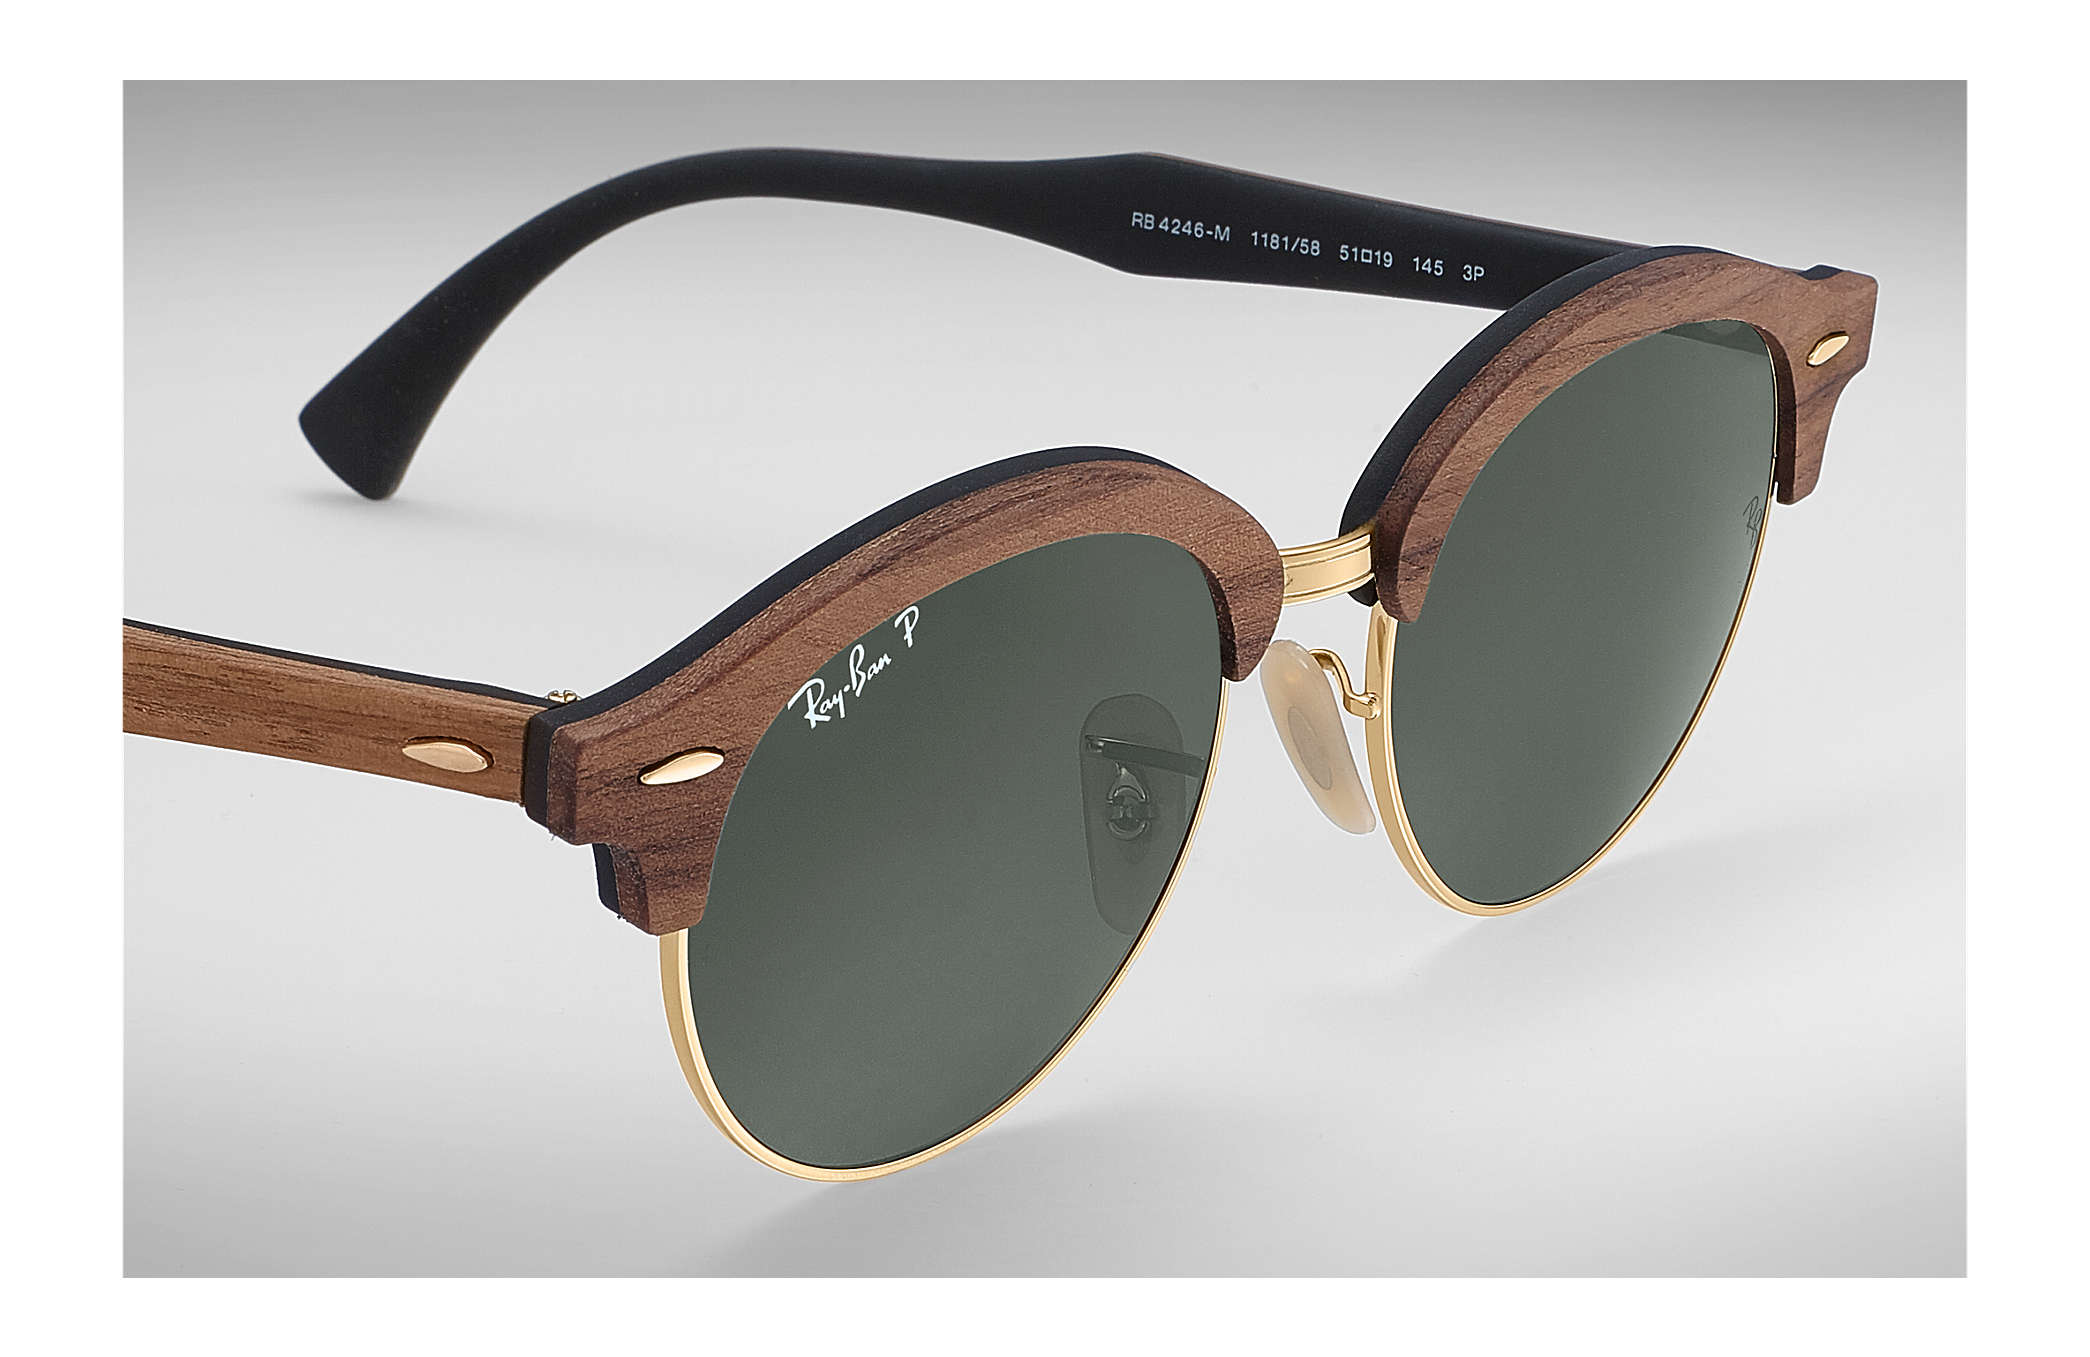 336497e544 Ray-Ban Clubround Wood RB4246M Brown - Wood - Green Polarized Lenses ...